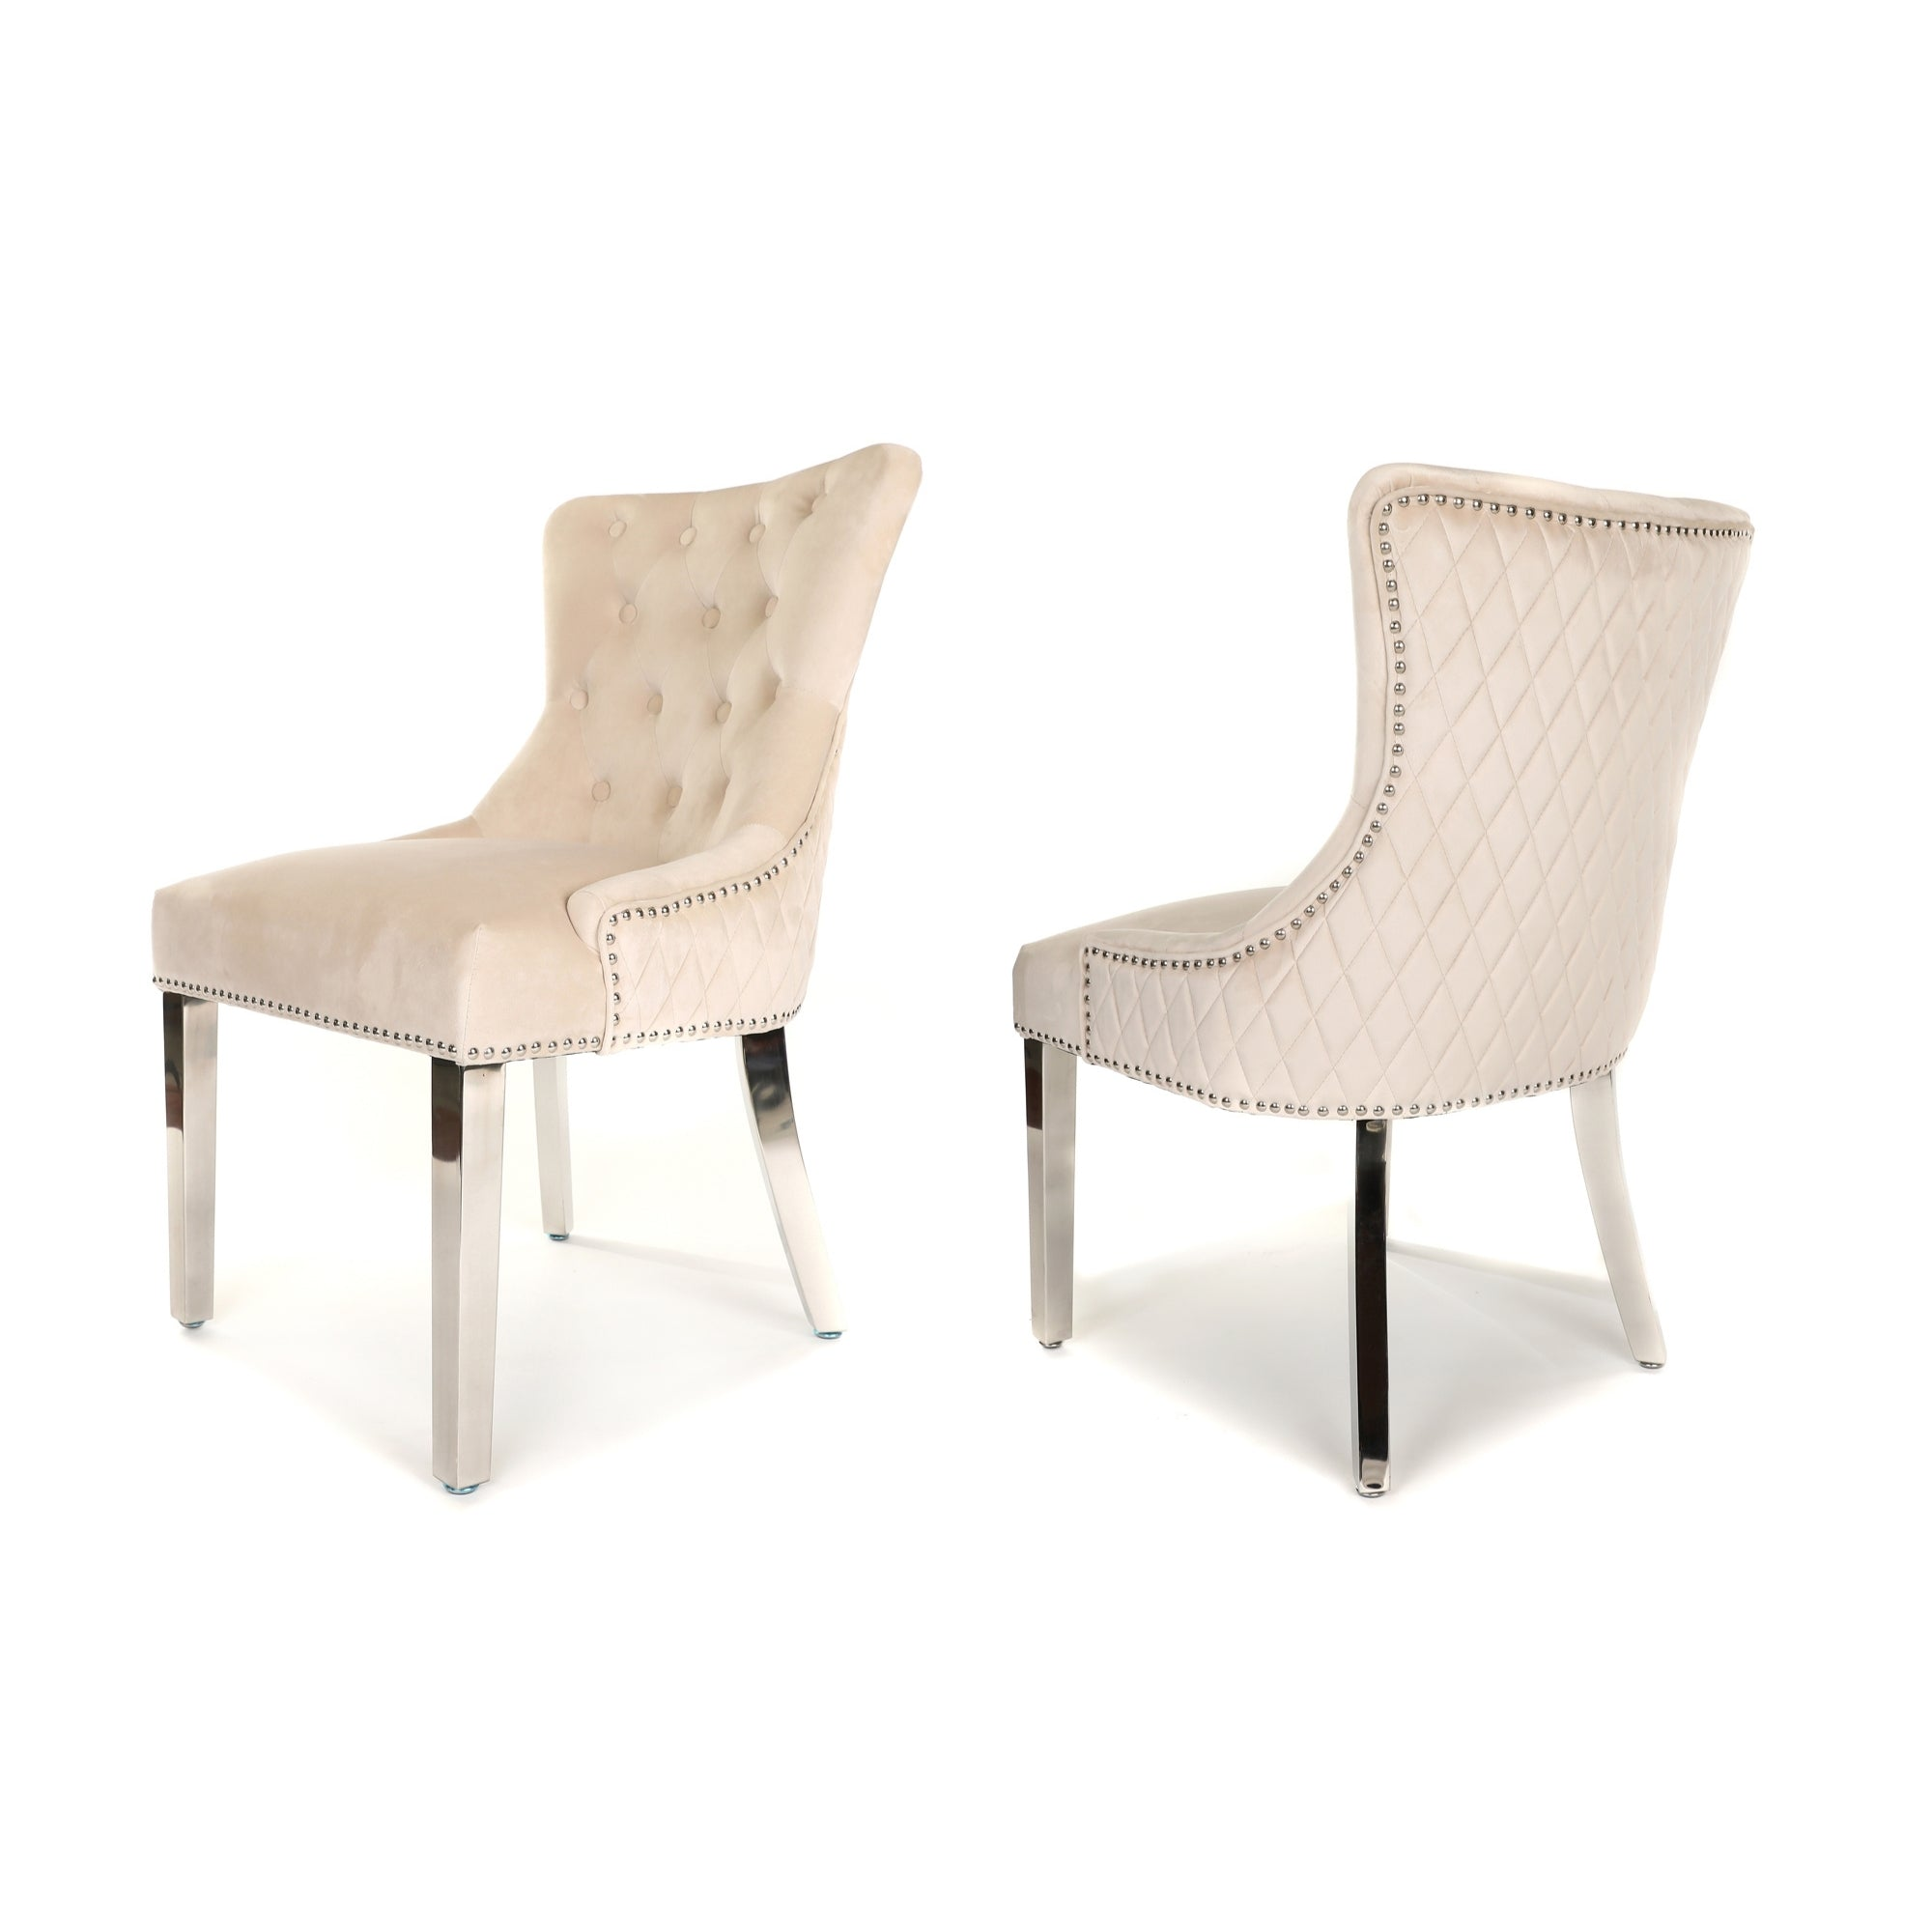 Simone Dining Chair upholstered in beige velvet with stud detail, quilted-back and metal legs